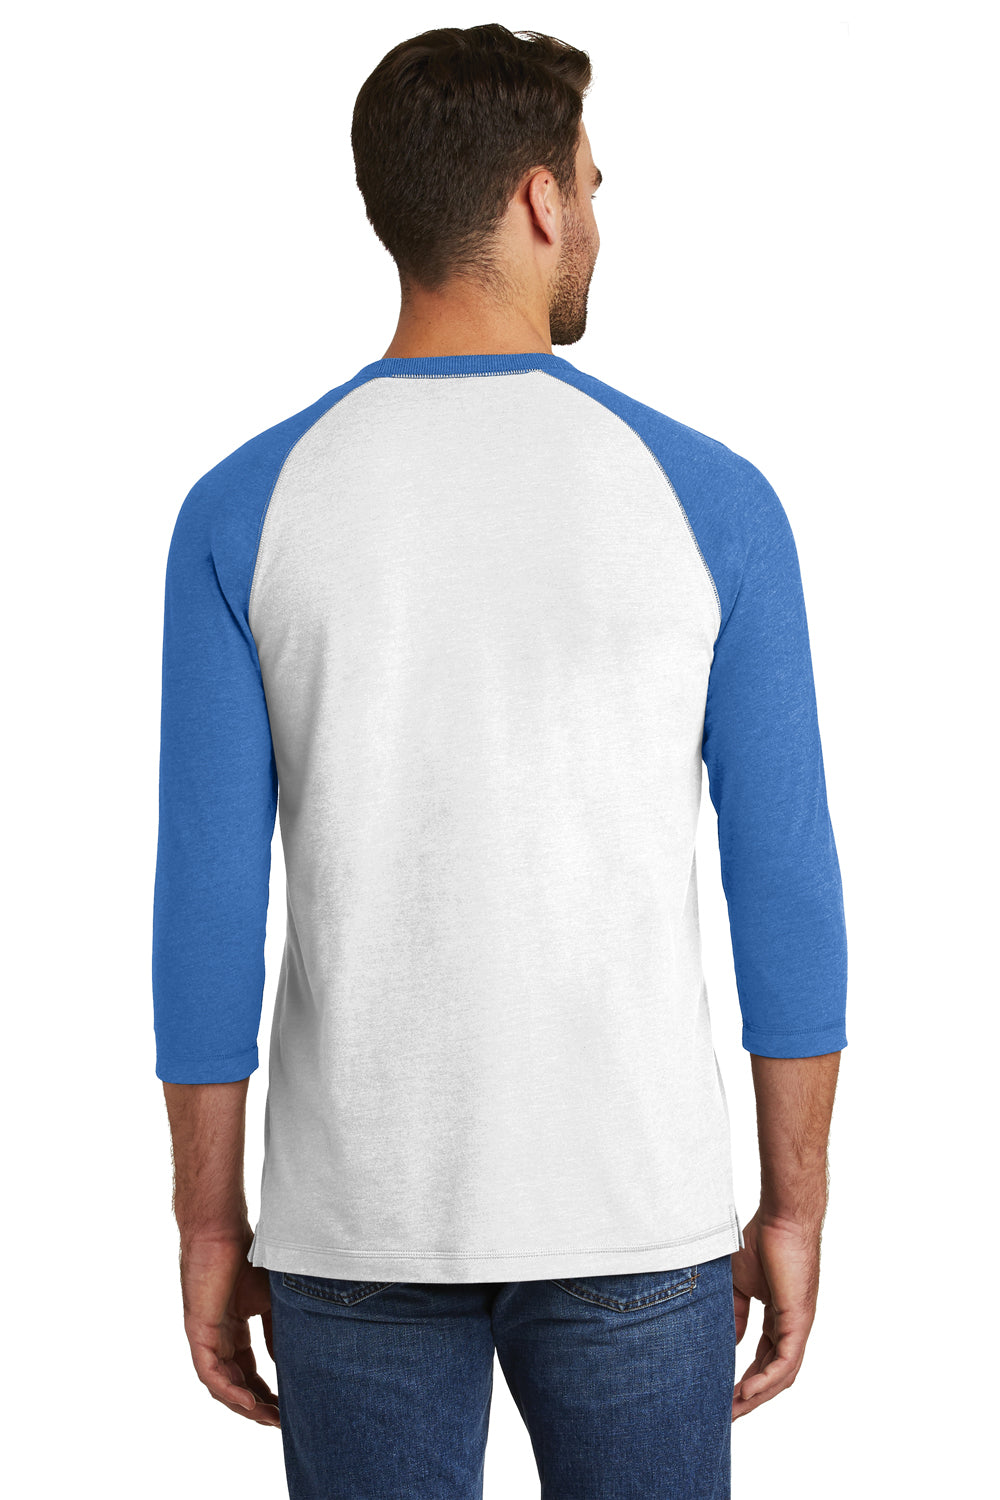 New Era NEA121 Mens Sueded 3/4 Sleeve Crewneck T-Shirt Heather Royal Blue/White Back